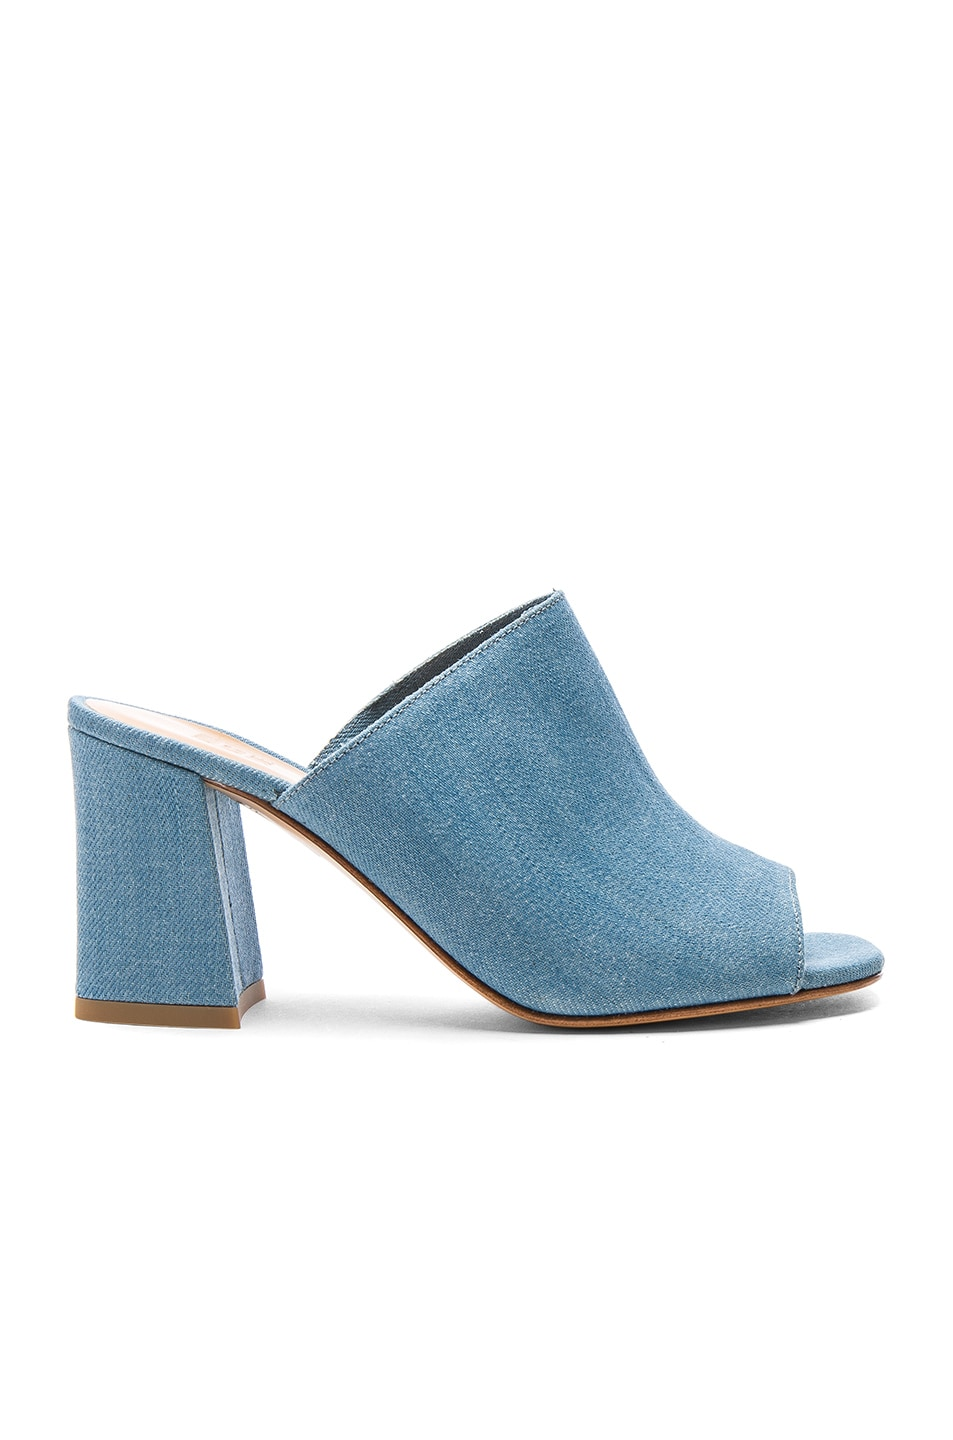 Image 1 of Maryam Nassir Zadeh Denim Penelope Mules in Light Denim